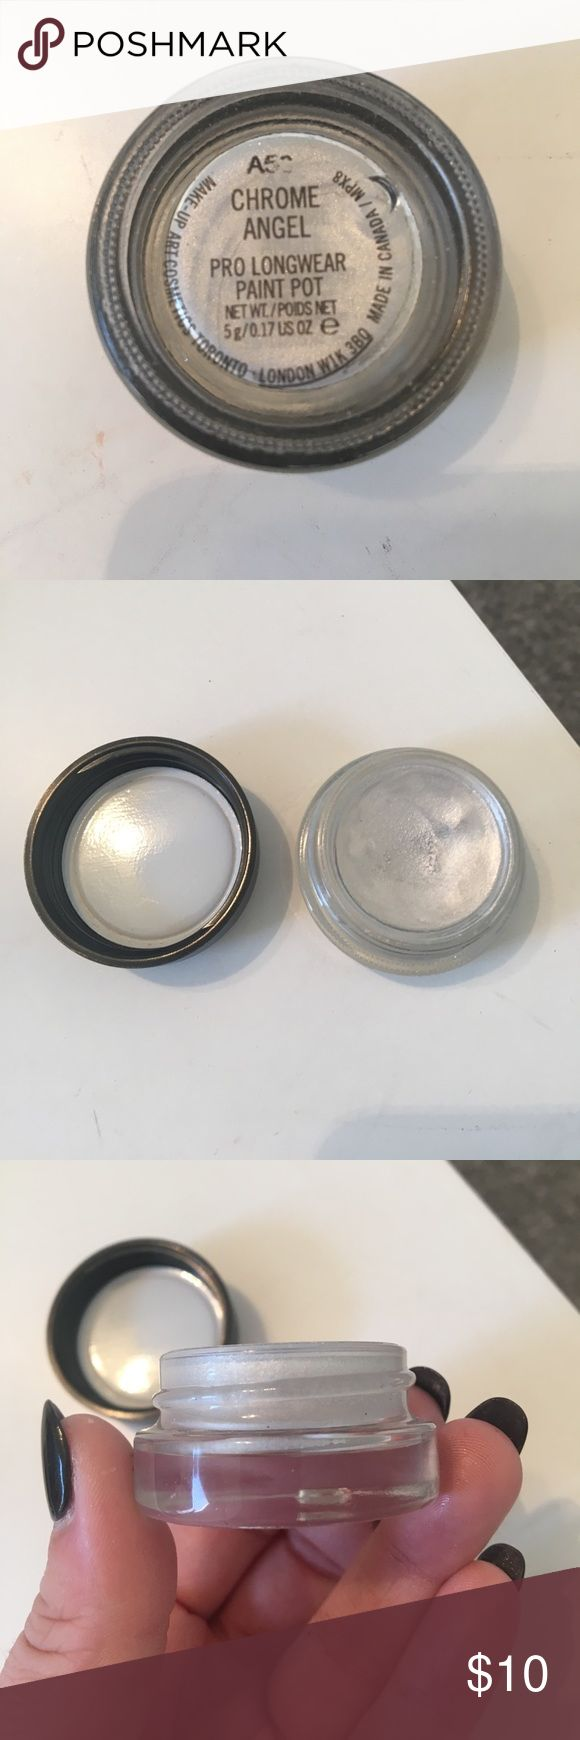 Mac paint pot in chrome angel Mac paint pot in chrome angel. This is an eyeshadow base or can be used as an eyeshadow alone. It is a shimmery silver color. MAC Cosmetics Makeup Eyeshadow